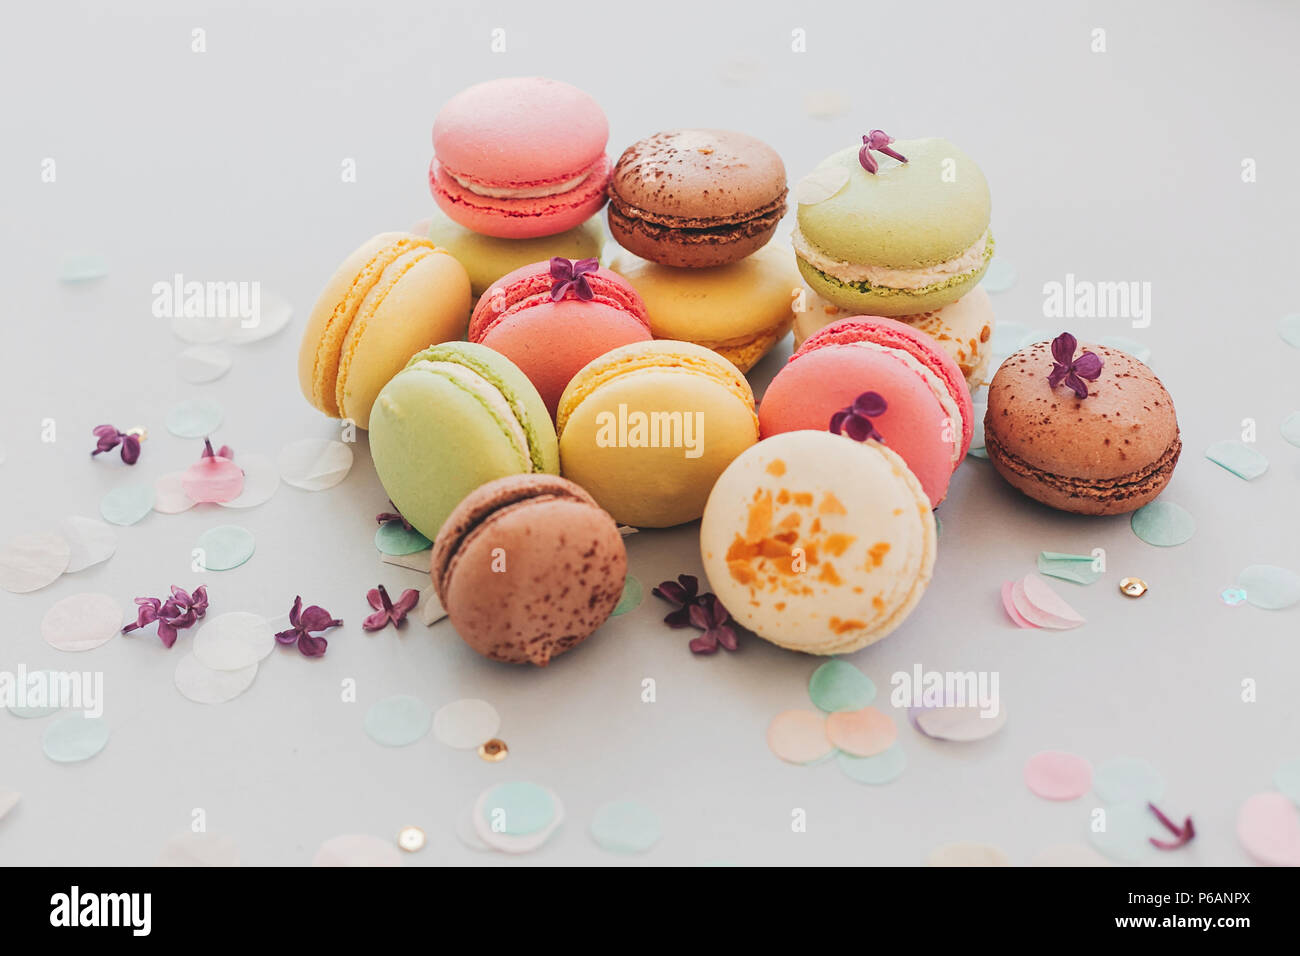 tasty pink, yellow, green and brown macaroons on trendy pastel gray paper with lilac flowers and confetti. space for text. delicious colorful macaroon - Stock Image